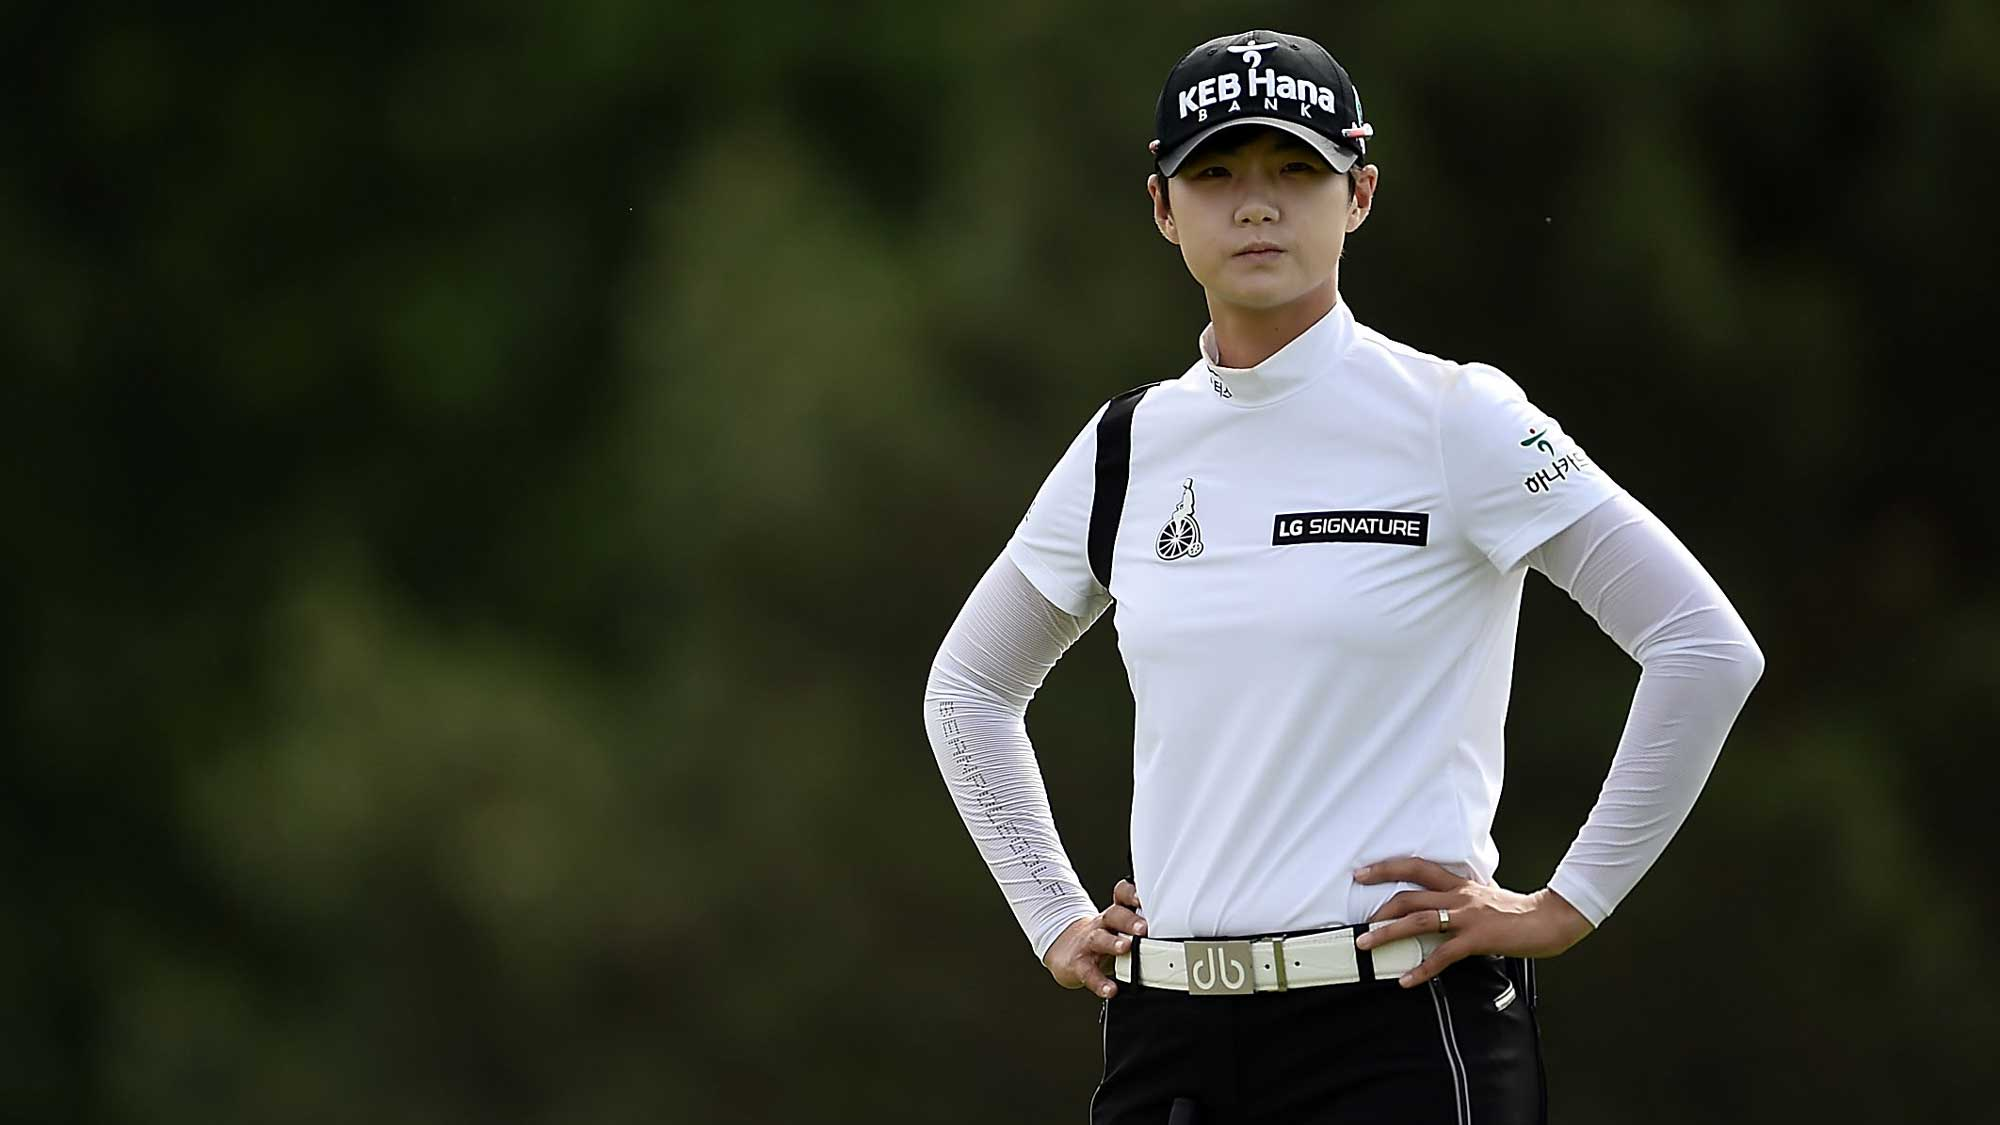 Sung Hyun Park of South Korea waits to putt on the 17th green during the second round of the Meijer LPGA Classic